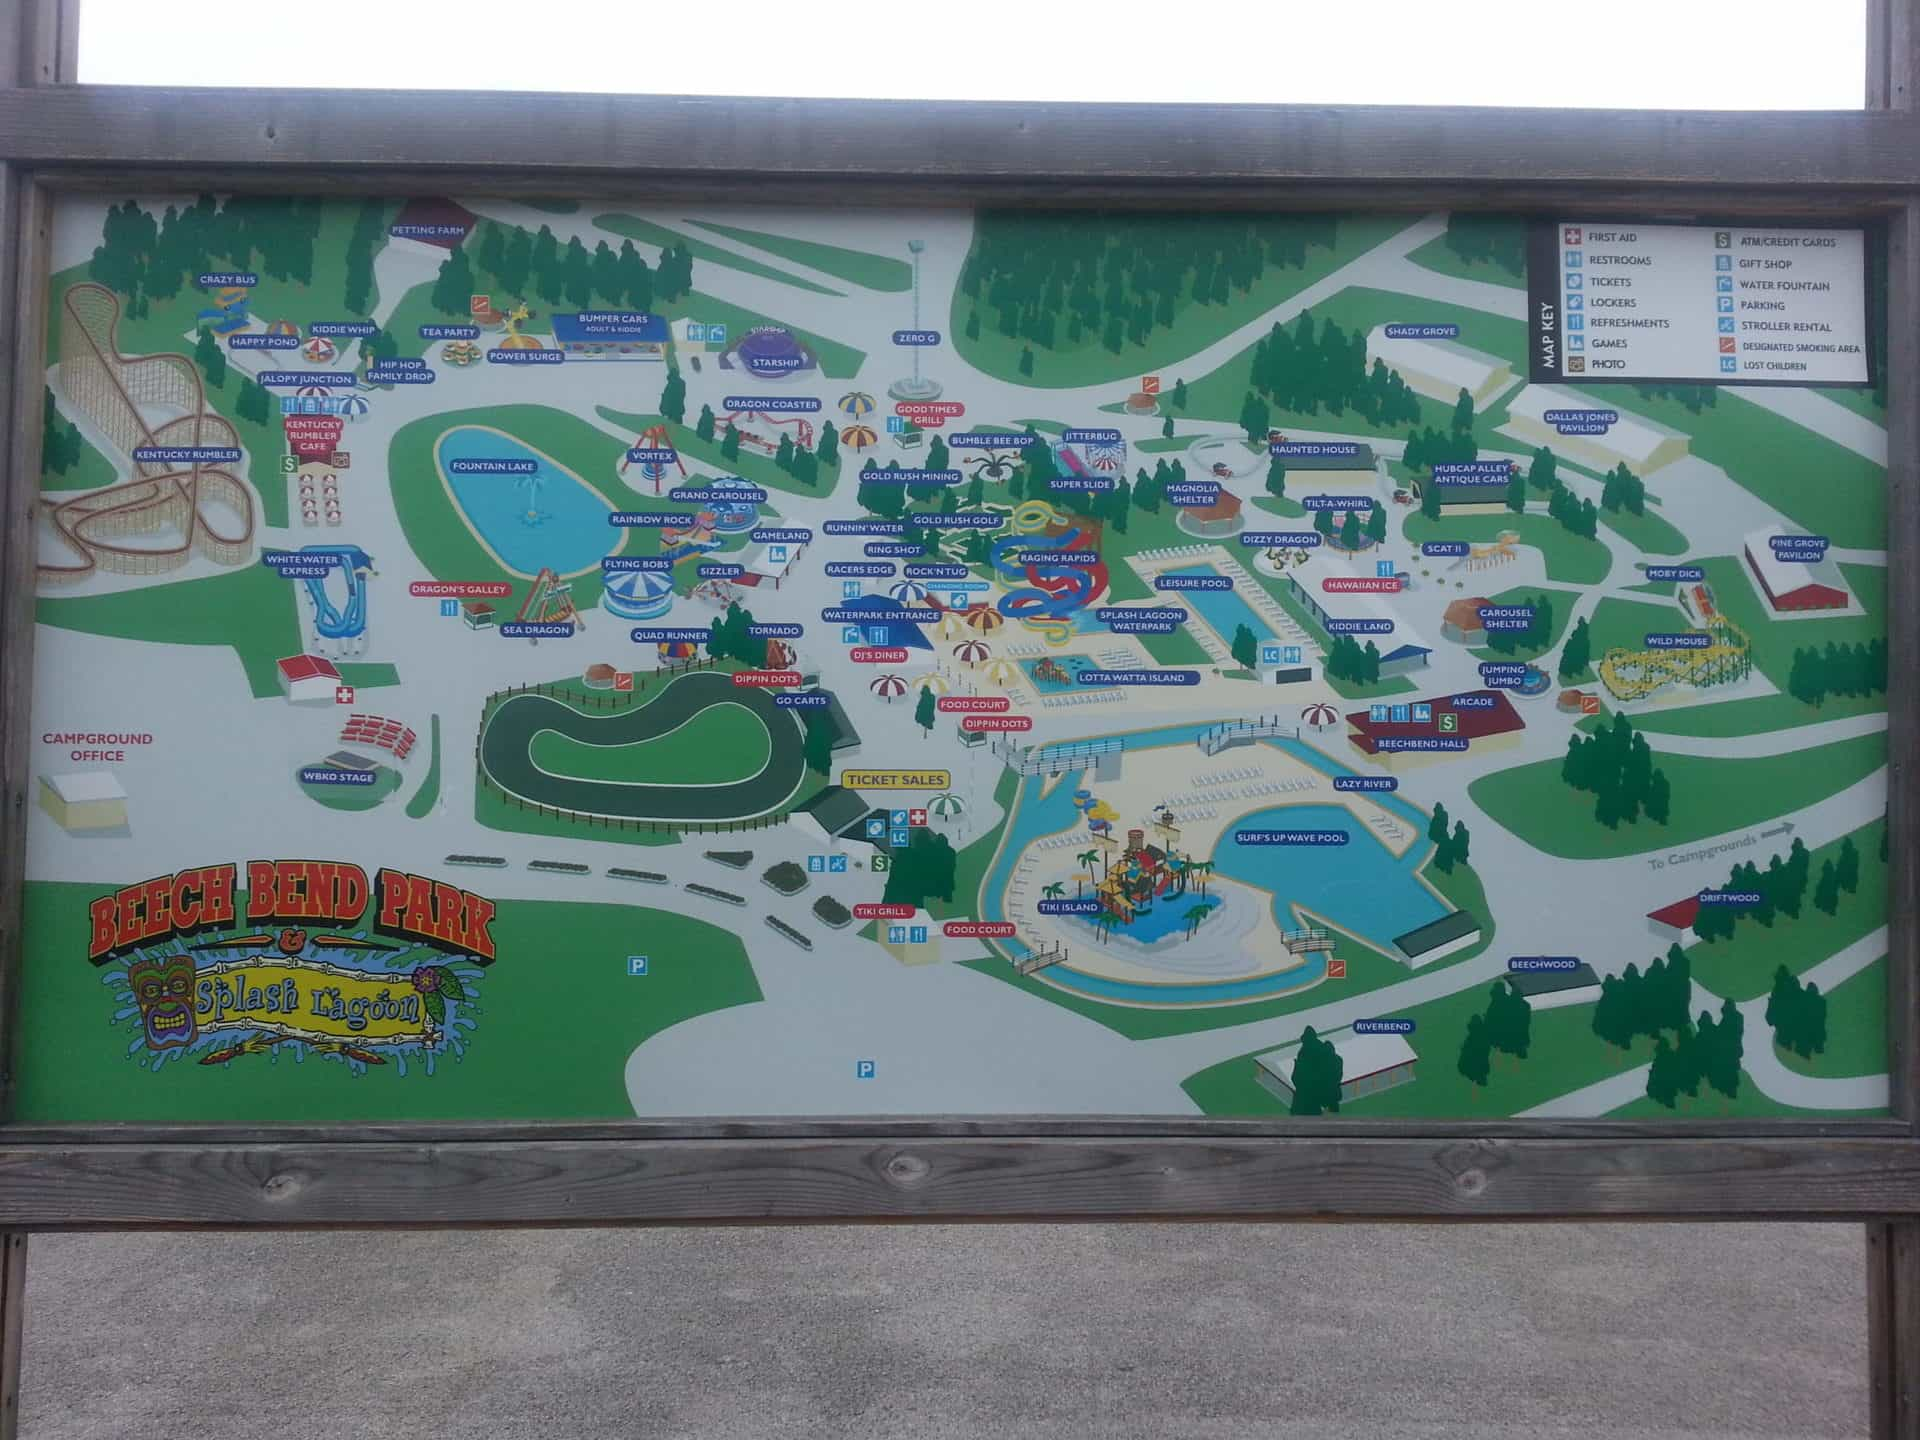 Beech Bend Park and Splash Lagoon - Map